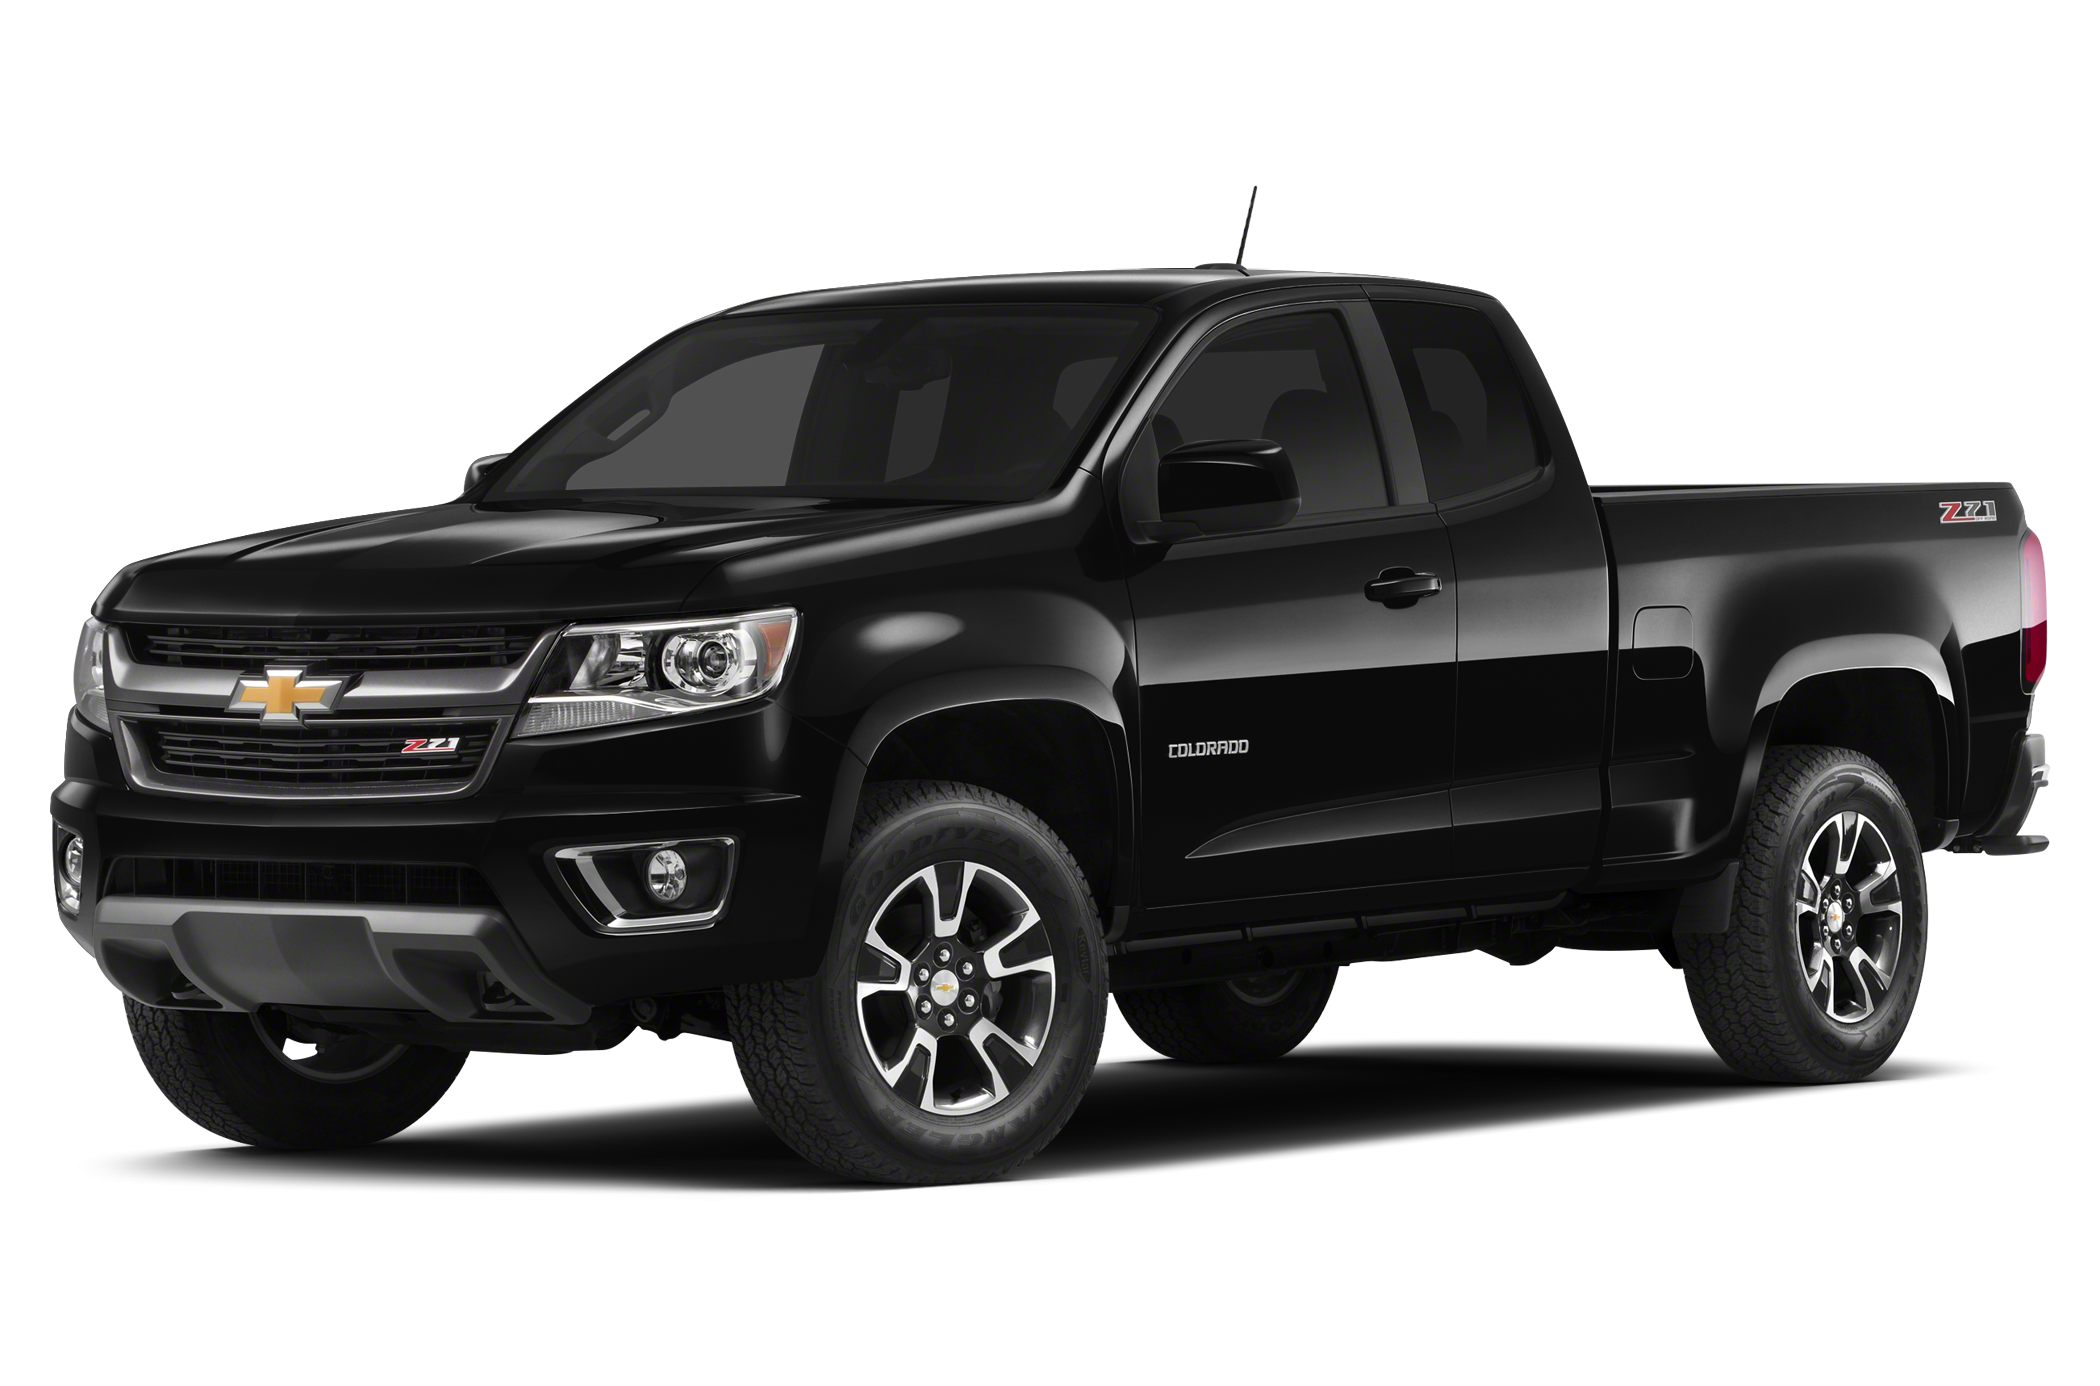 2015 Chevrolet Colorado LT Extended Cab Pickup for sale in Stockton for $30,465 with 6 miles.